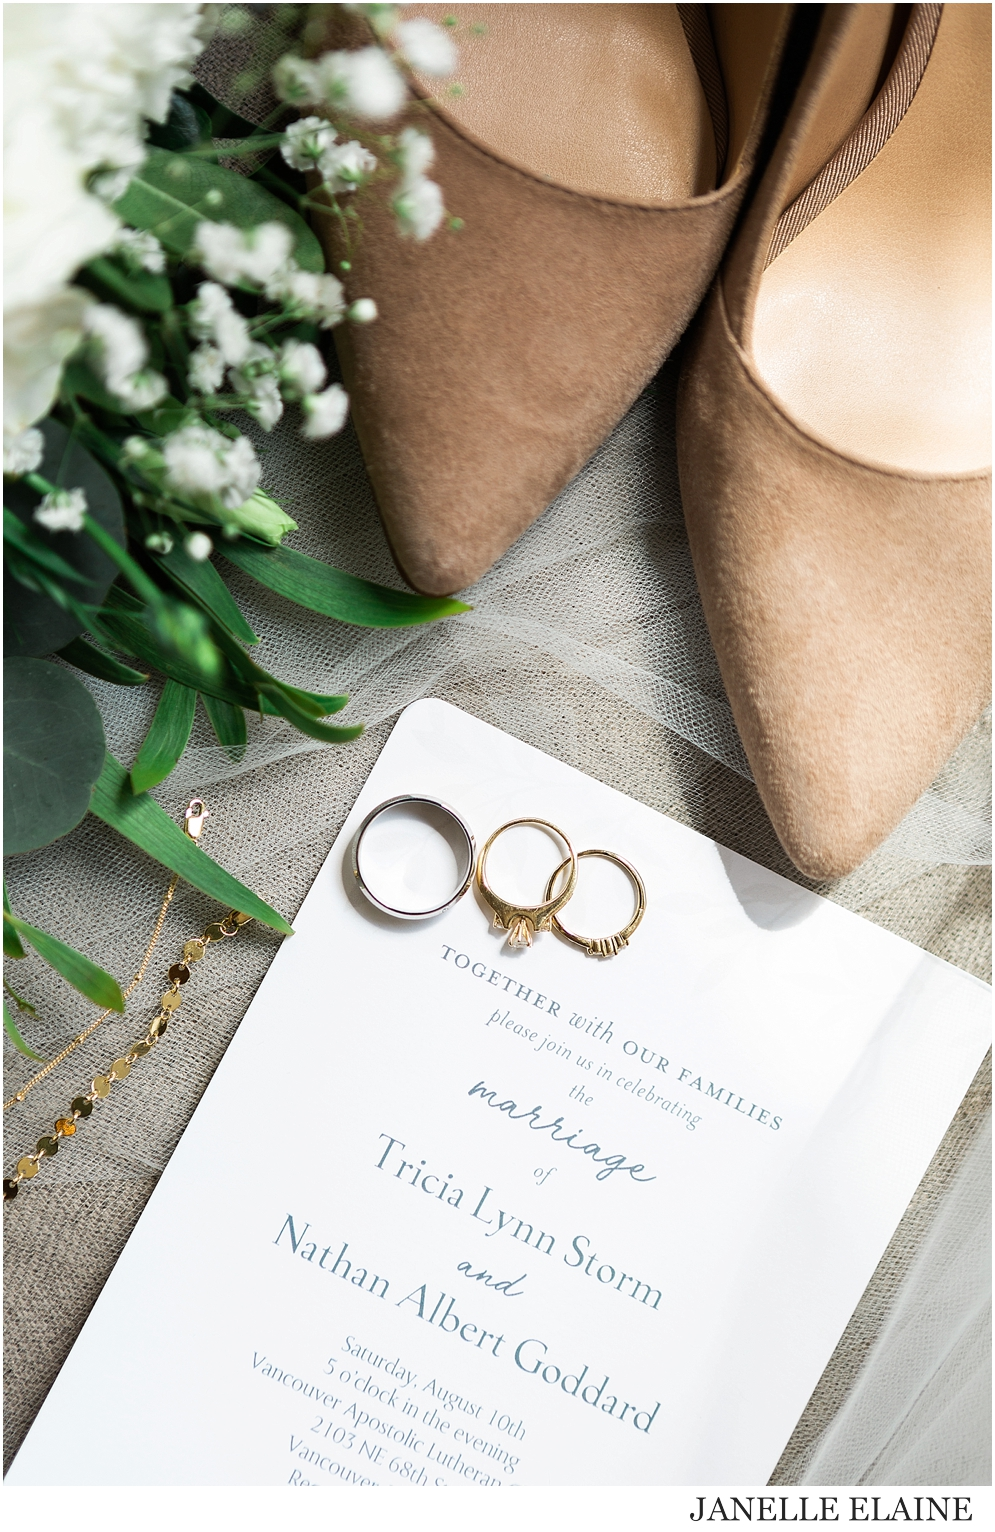 Tricia and Nathan Goddard Wedding-Getting Ready Photos-Janelle Elaine Photography-21.jpg